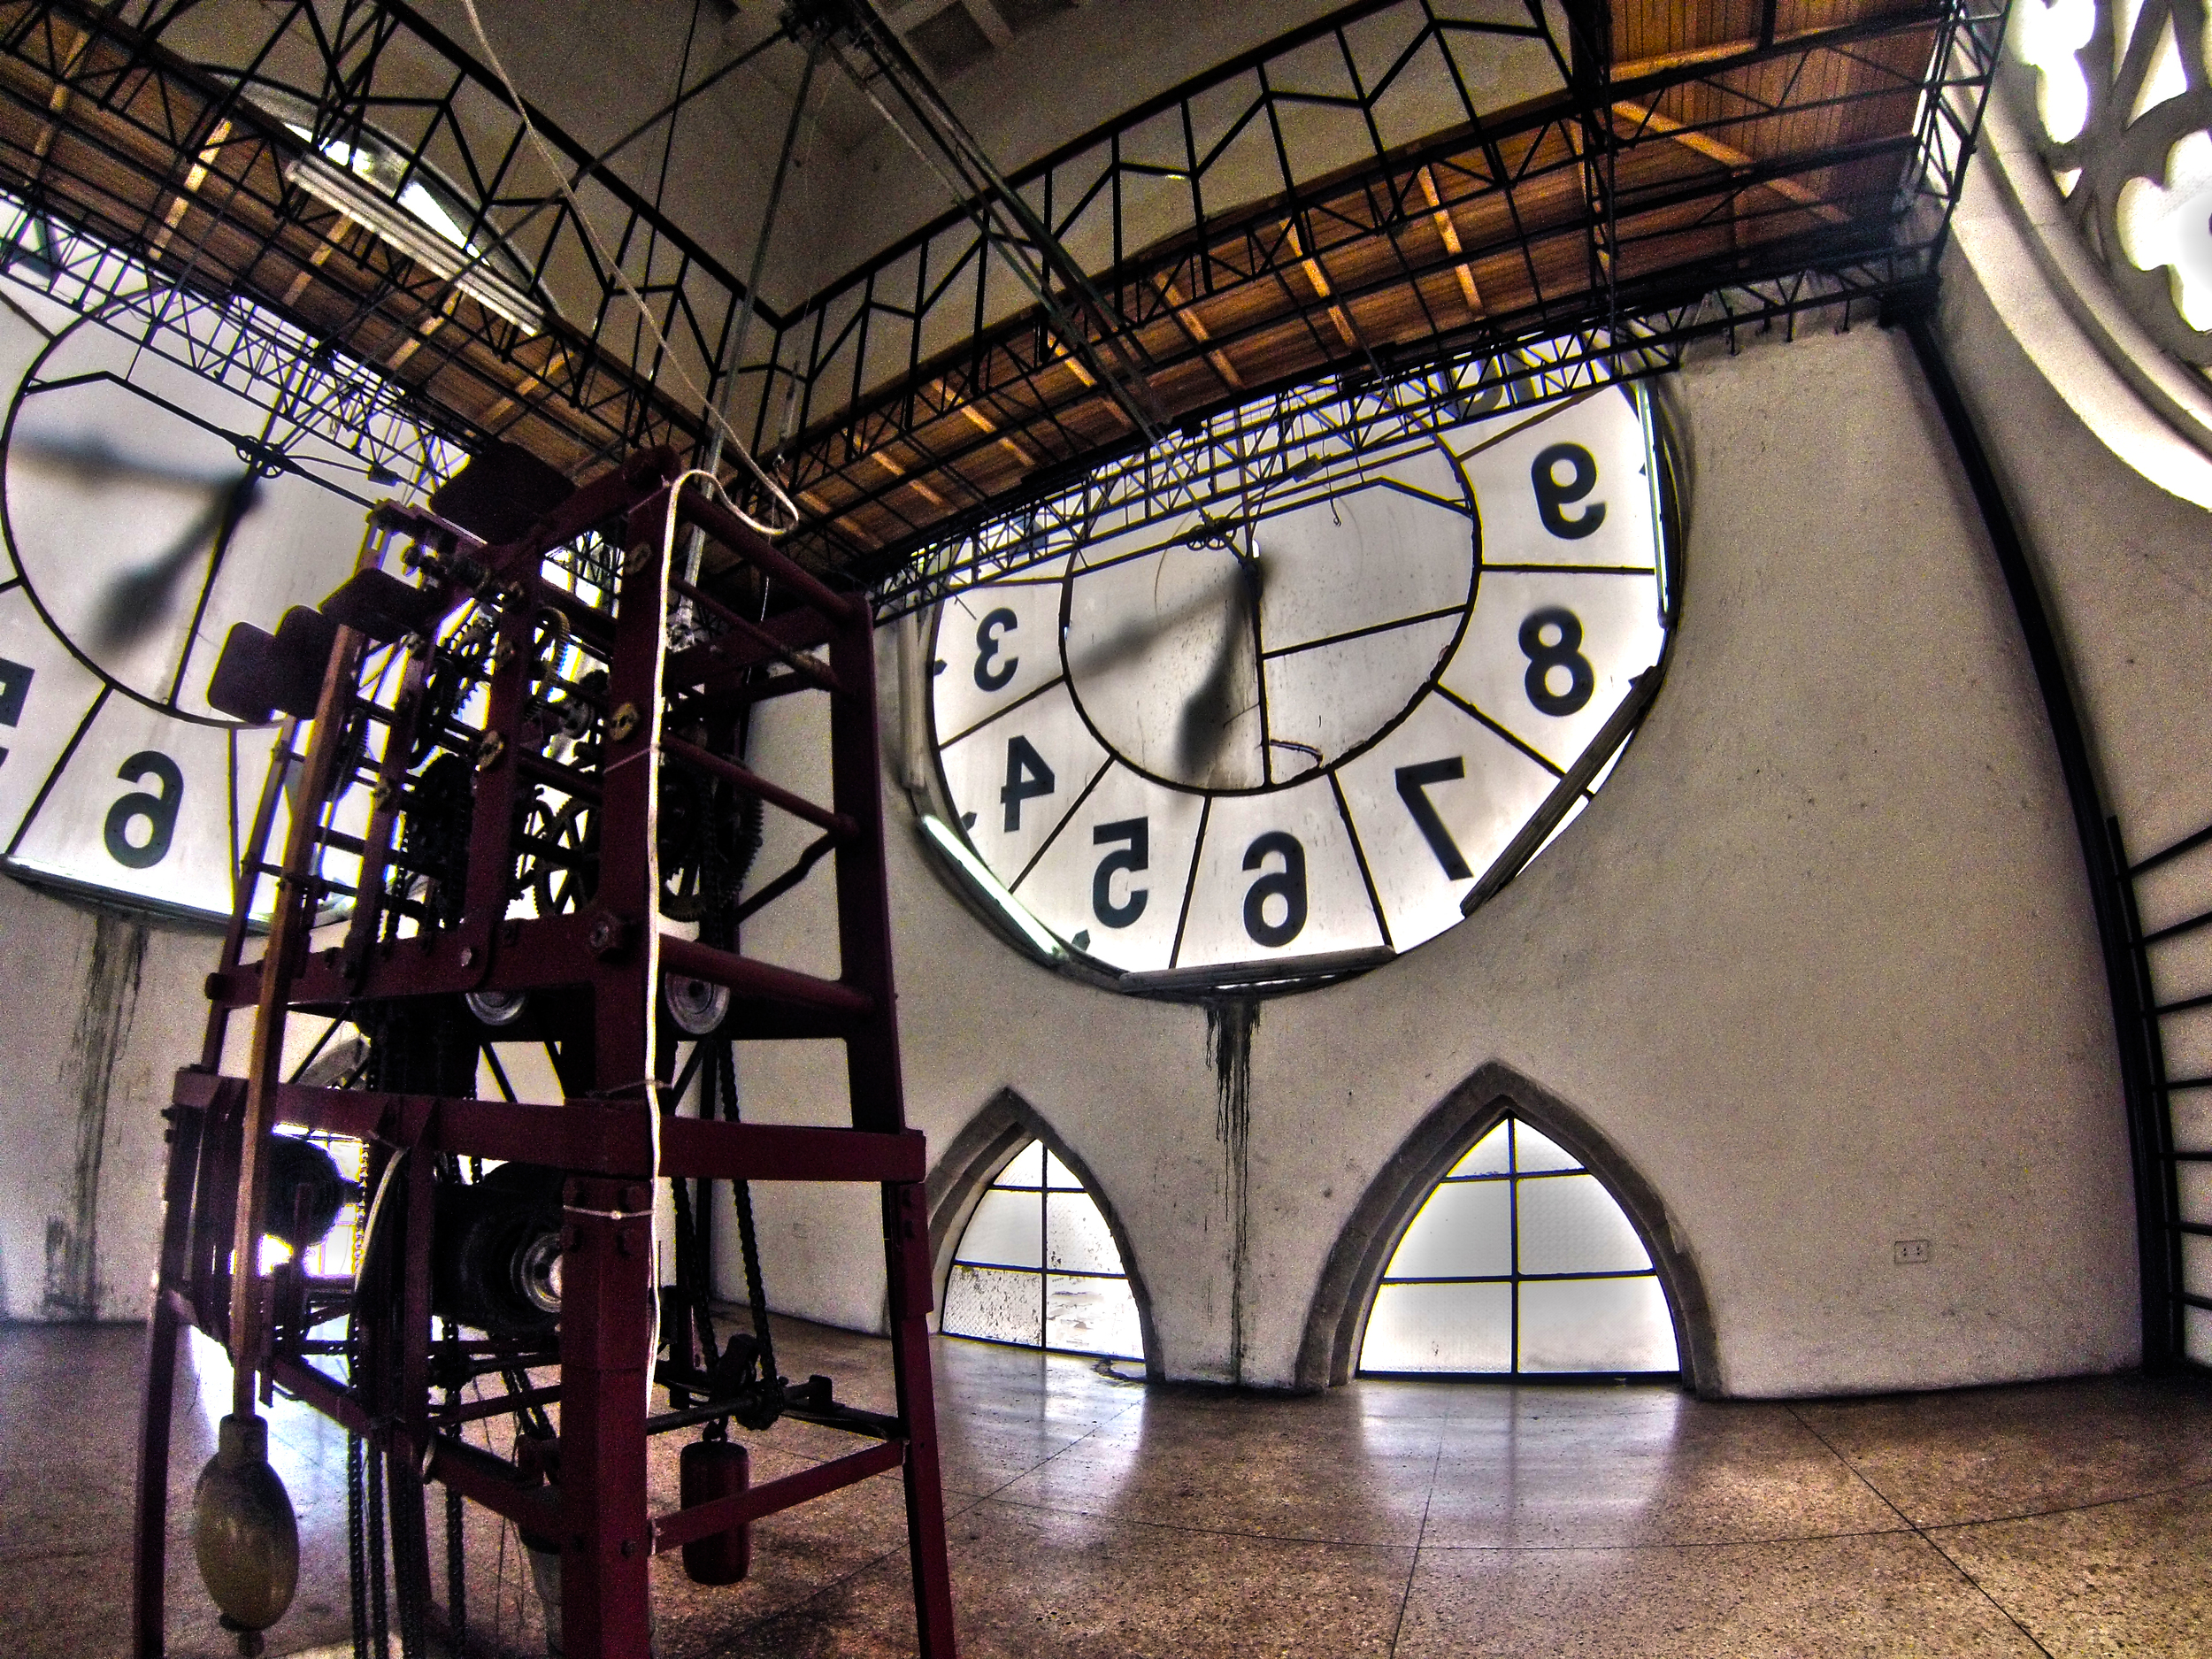 Inside one of the Basilica's clock towers